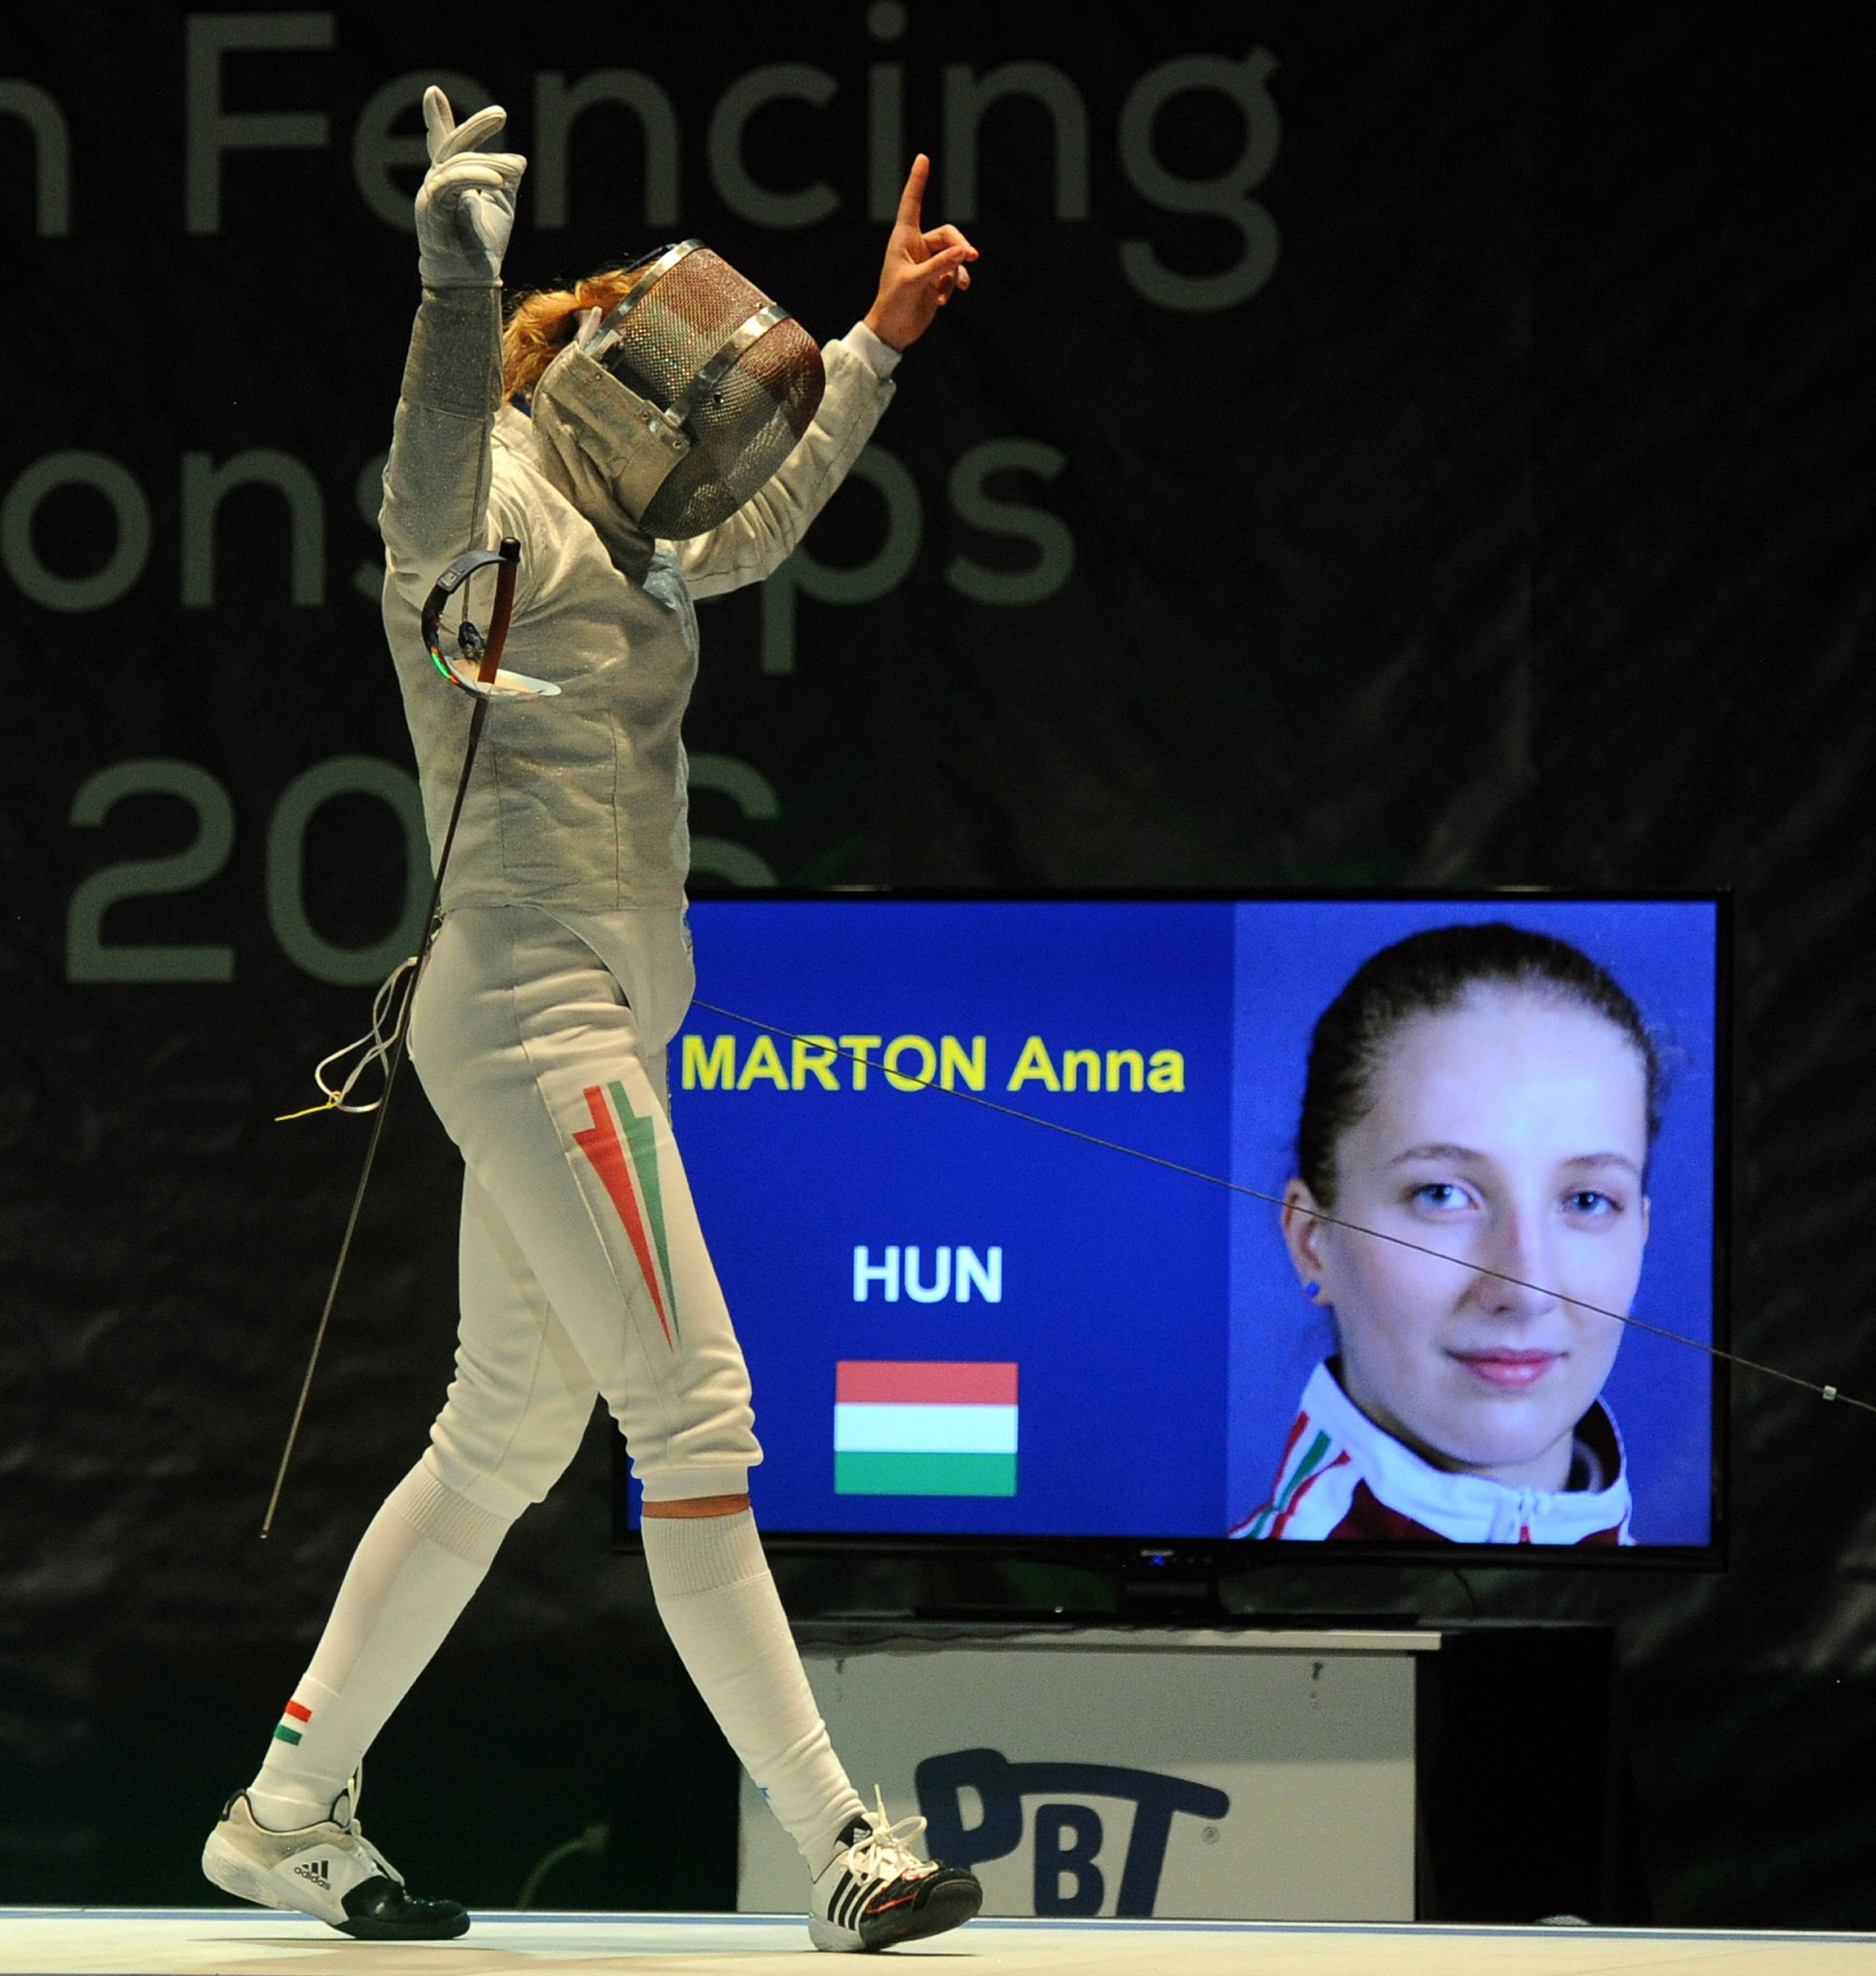 Hungary's Anna Márton defeated France's Cecilia Berder to win gold at the FIE Sabre World Cup in Budapest ©Getty Images